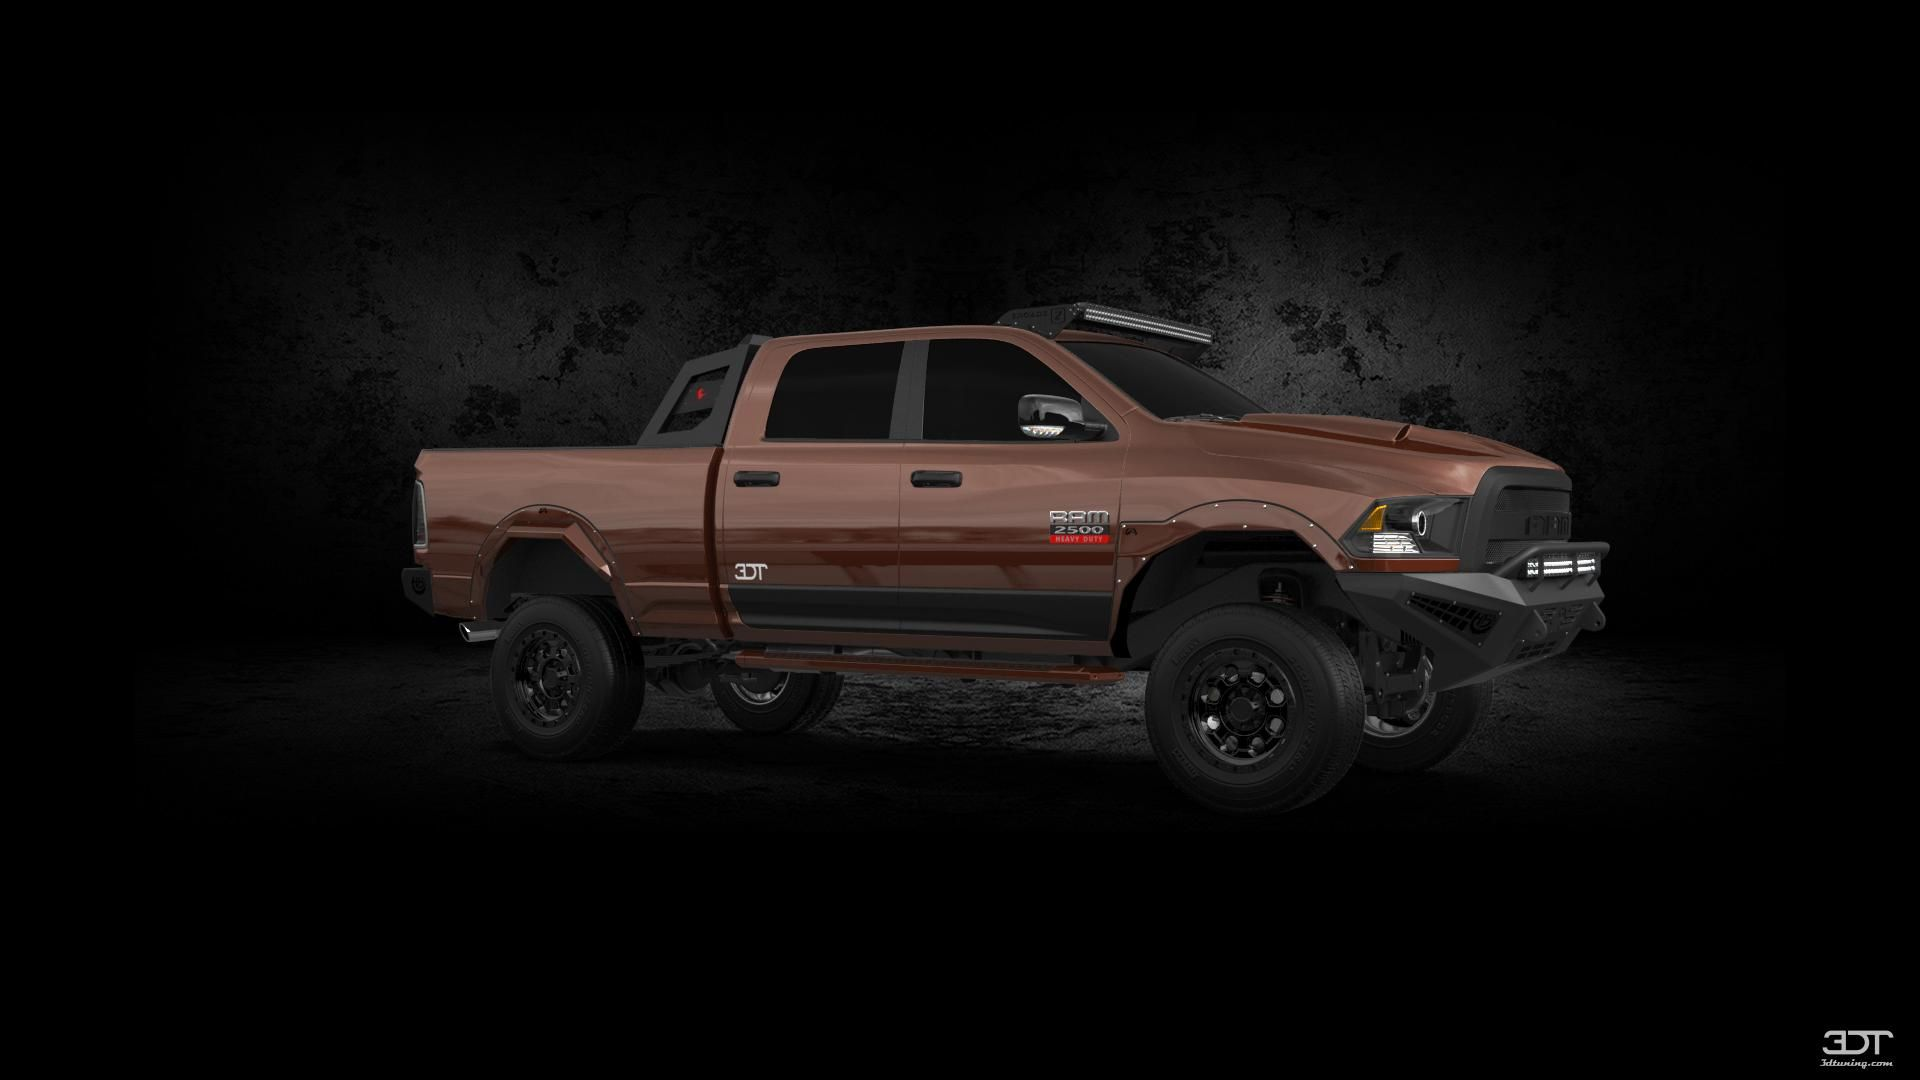 Checkout My Tuning Dodge Ram2500 2014 At 3dtuning 3dtuning Tuning Dodge Ram 2500 Fender Flares